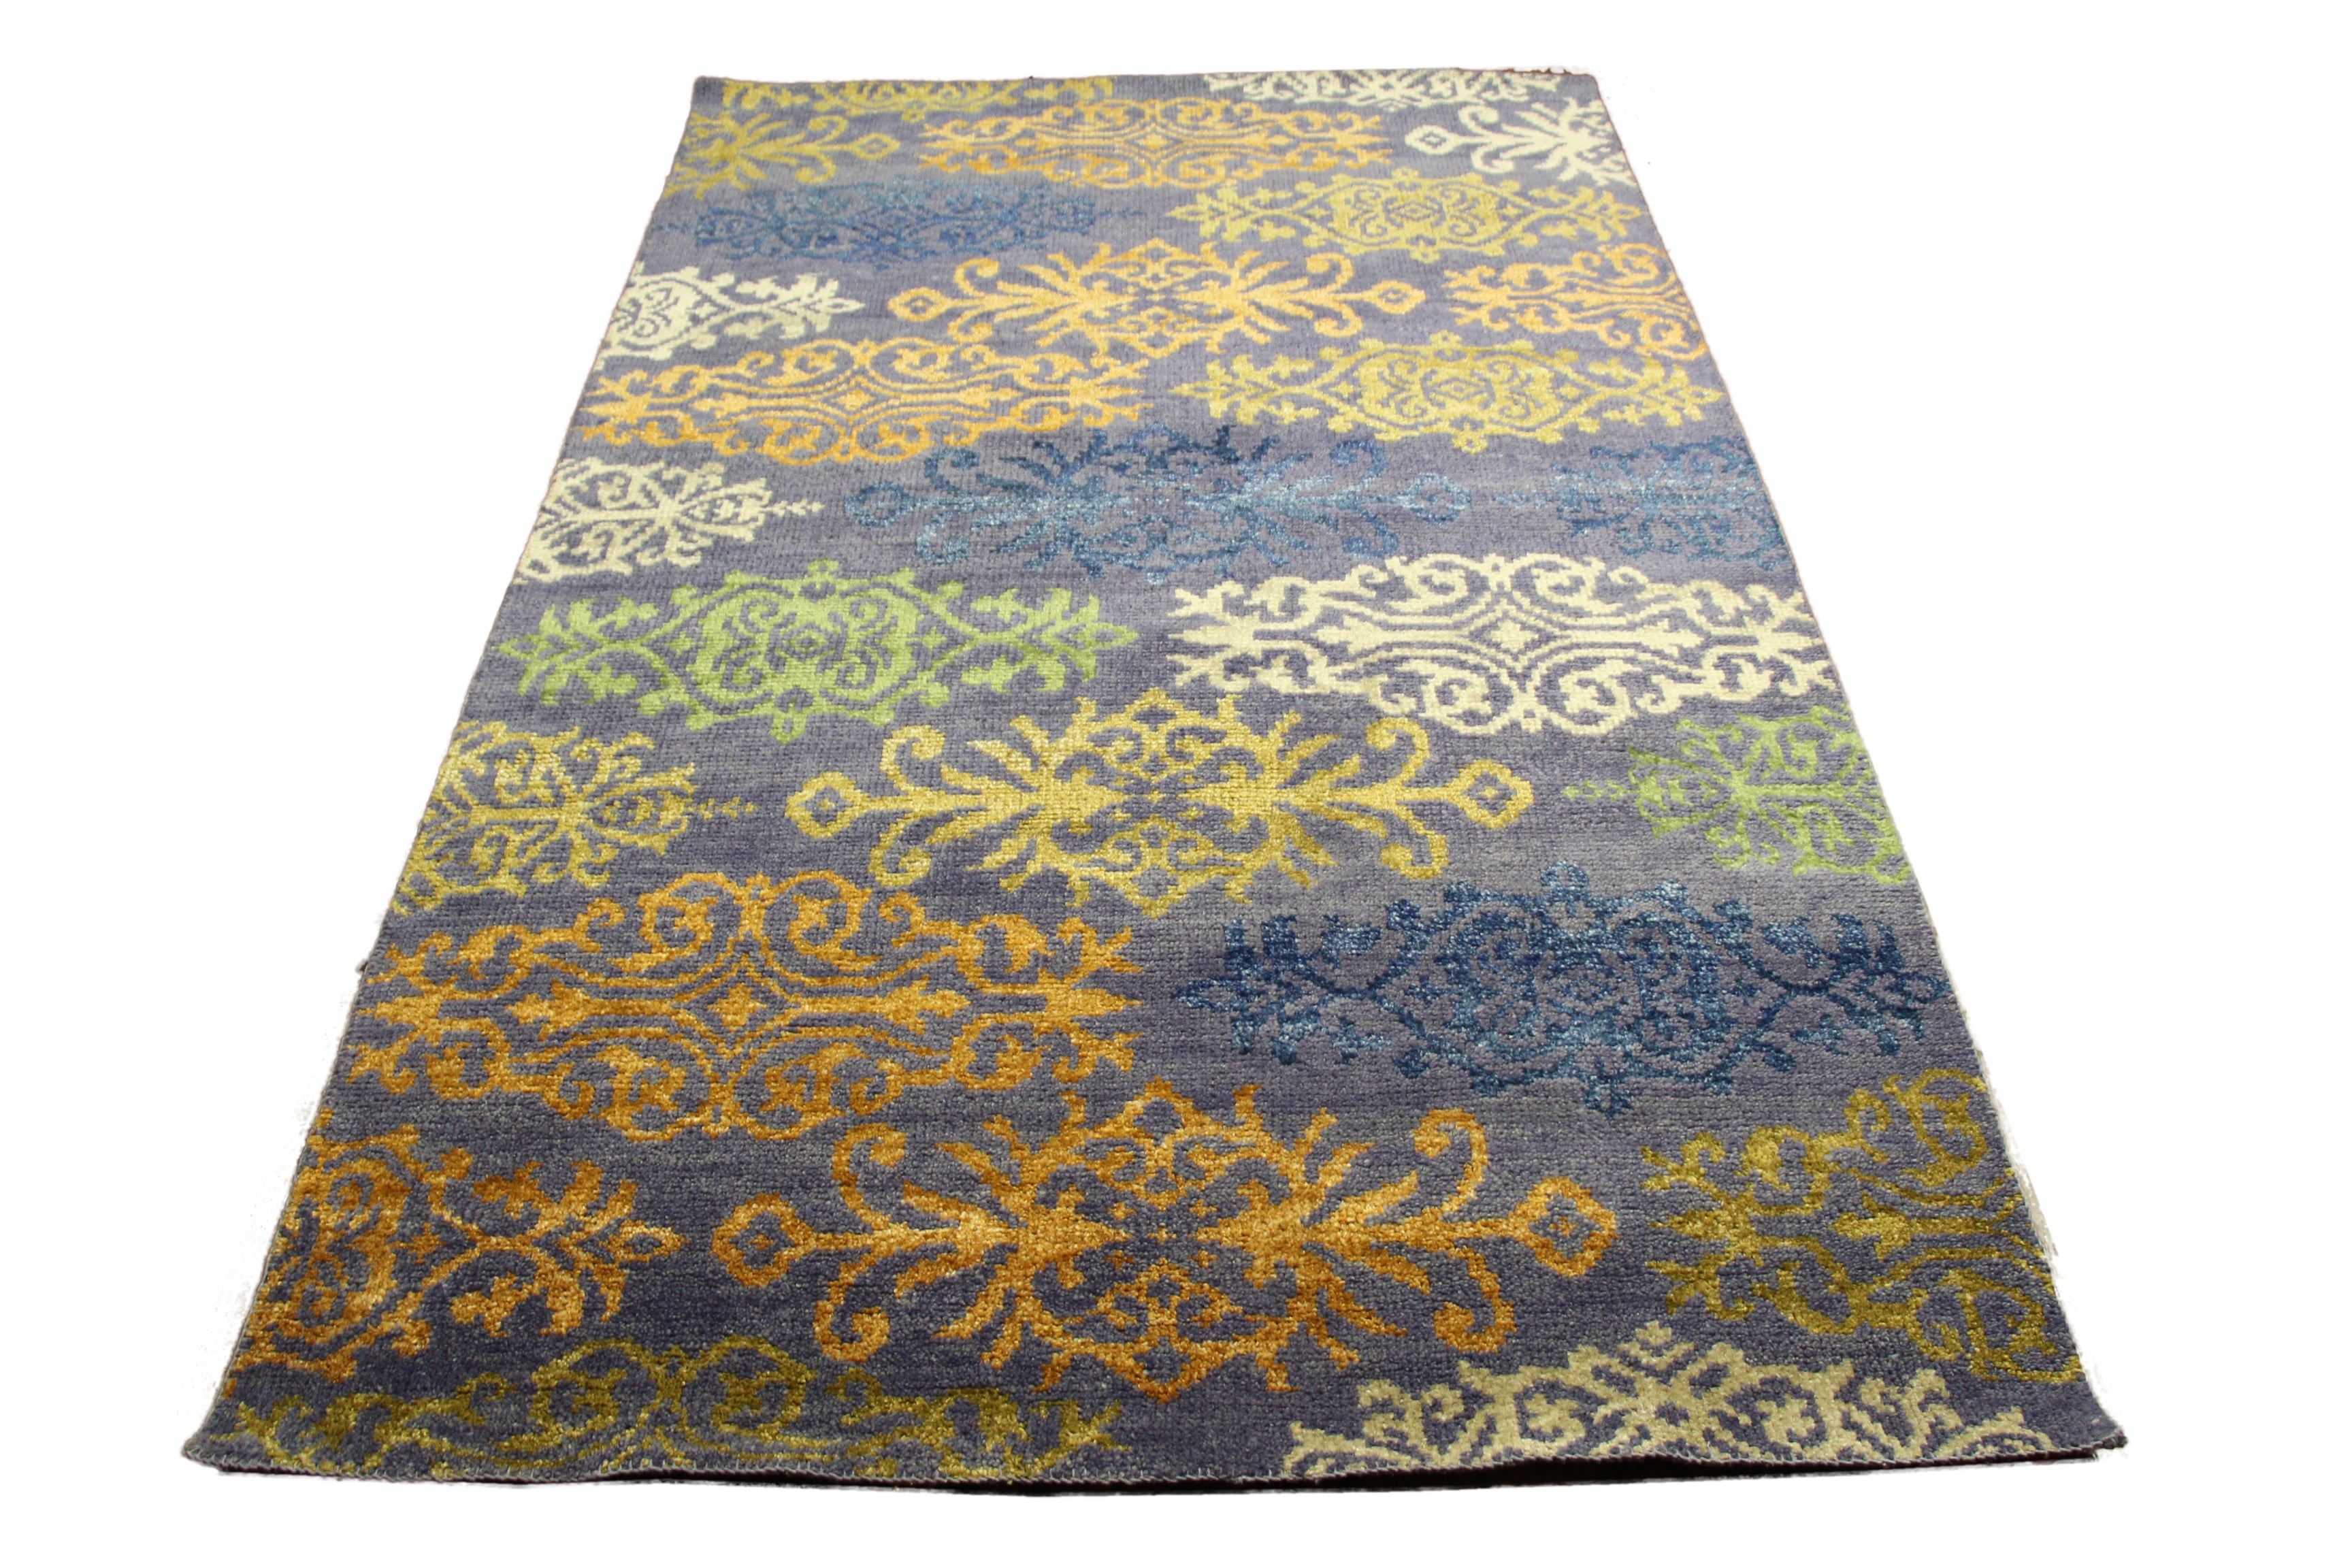 5x8 wool and silk pile rug